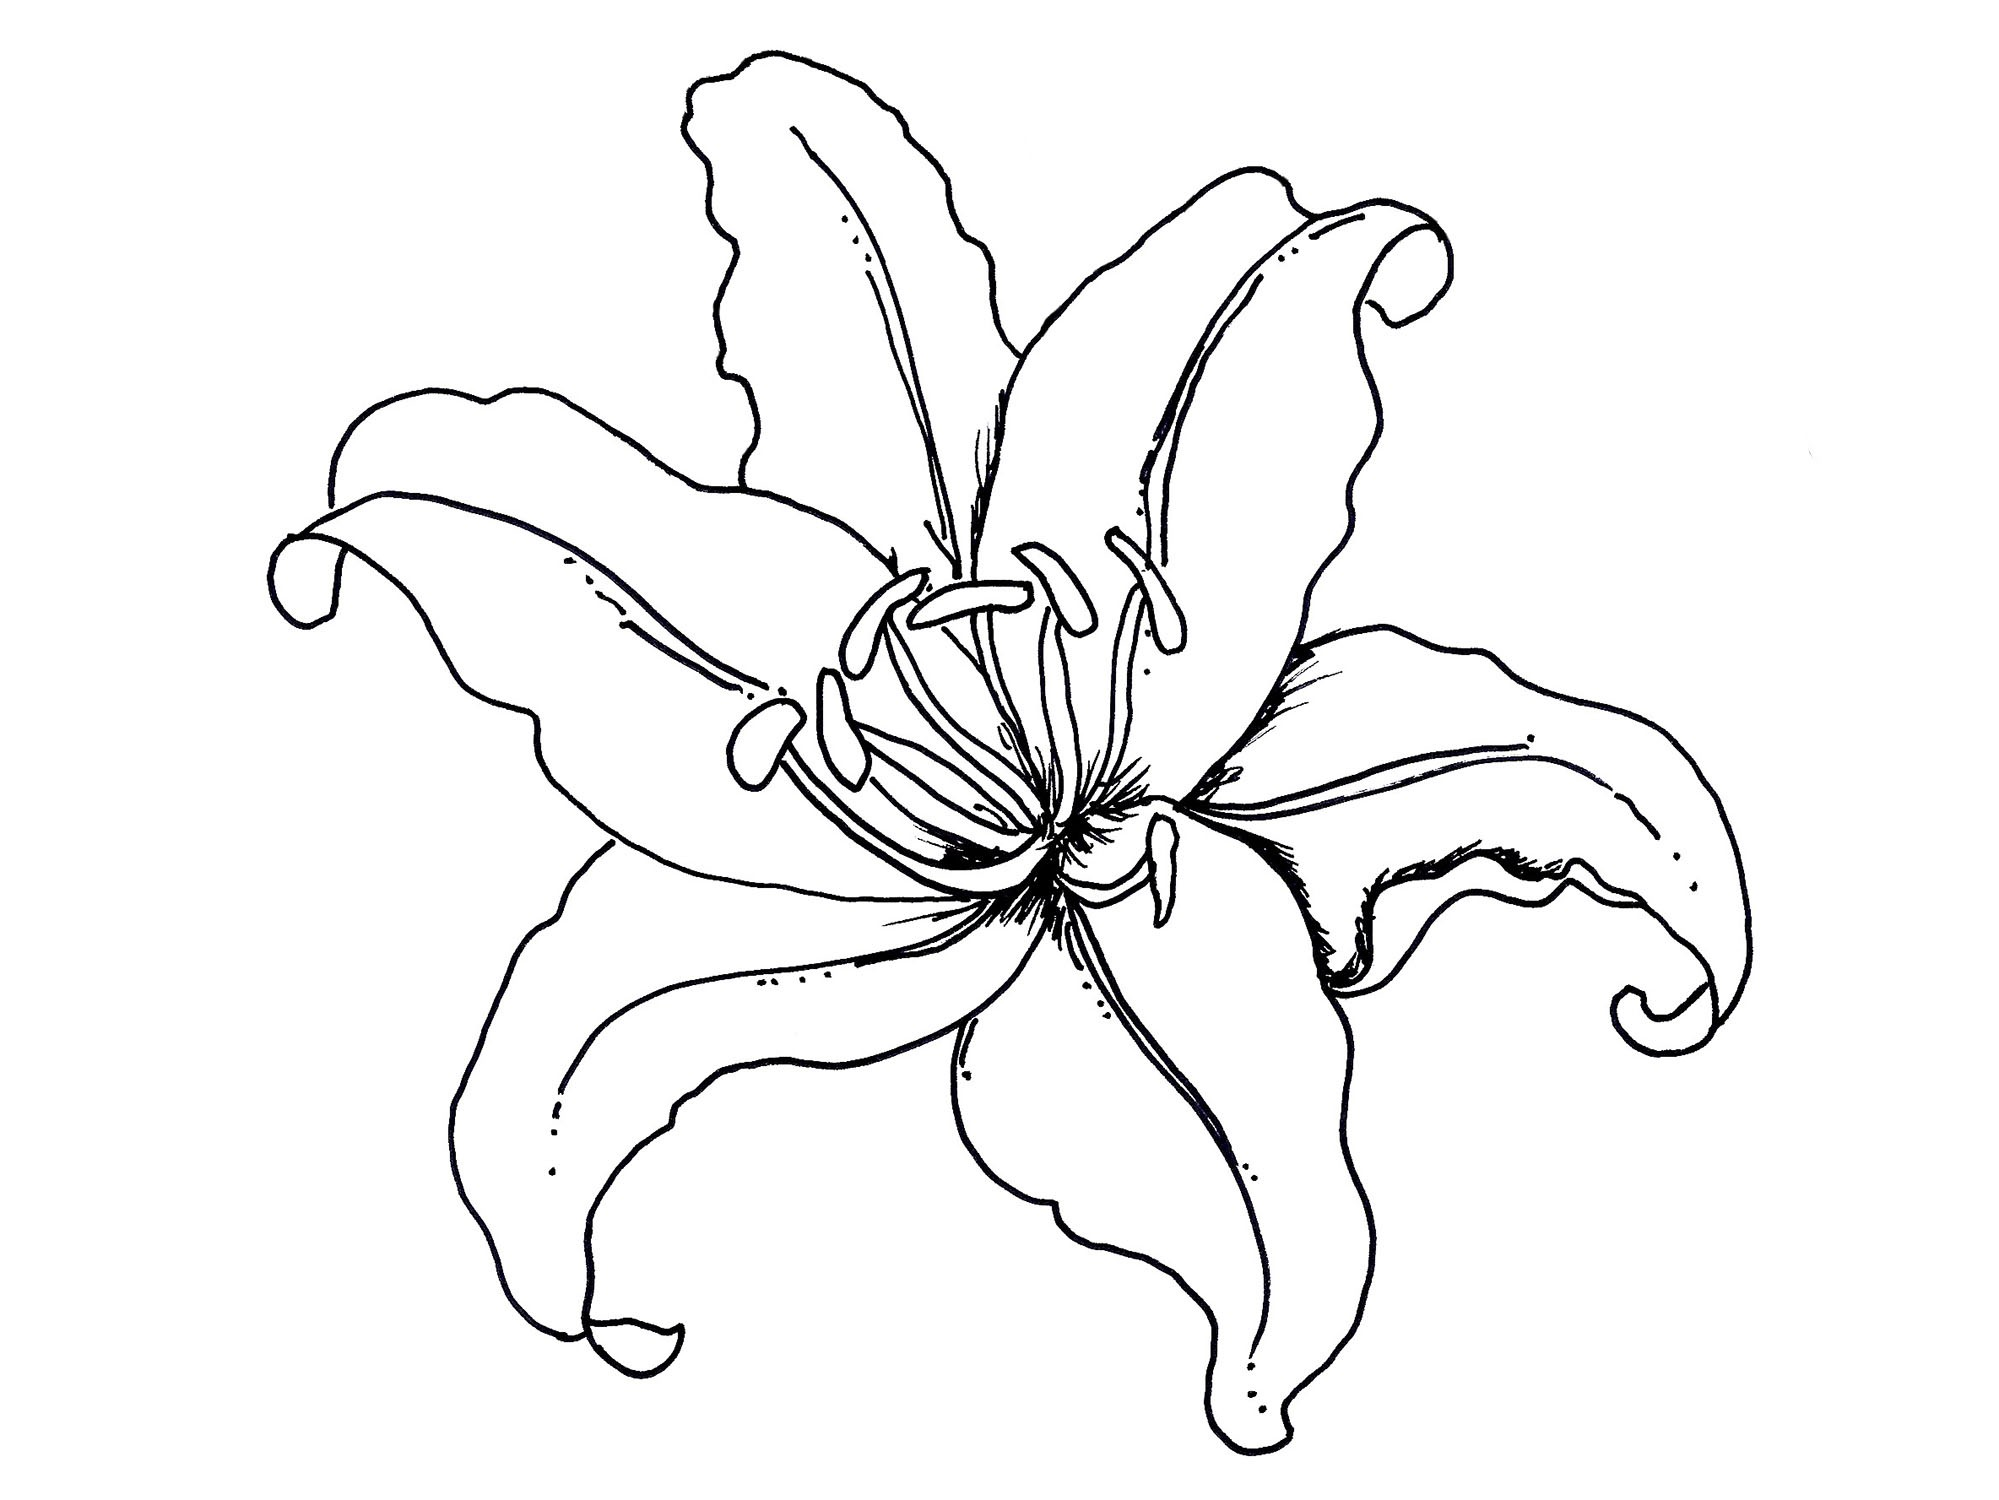 Rosebud Drawing At Free For Personal Use Rose Flower Line Diagram Simple Of Bud Stock Vector 1999x1500 Coloring Pages Kids Best Clipart Lily Pad